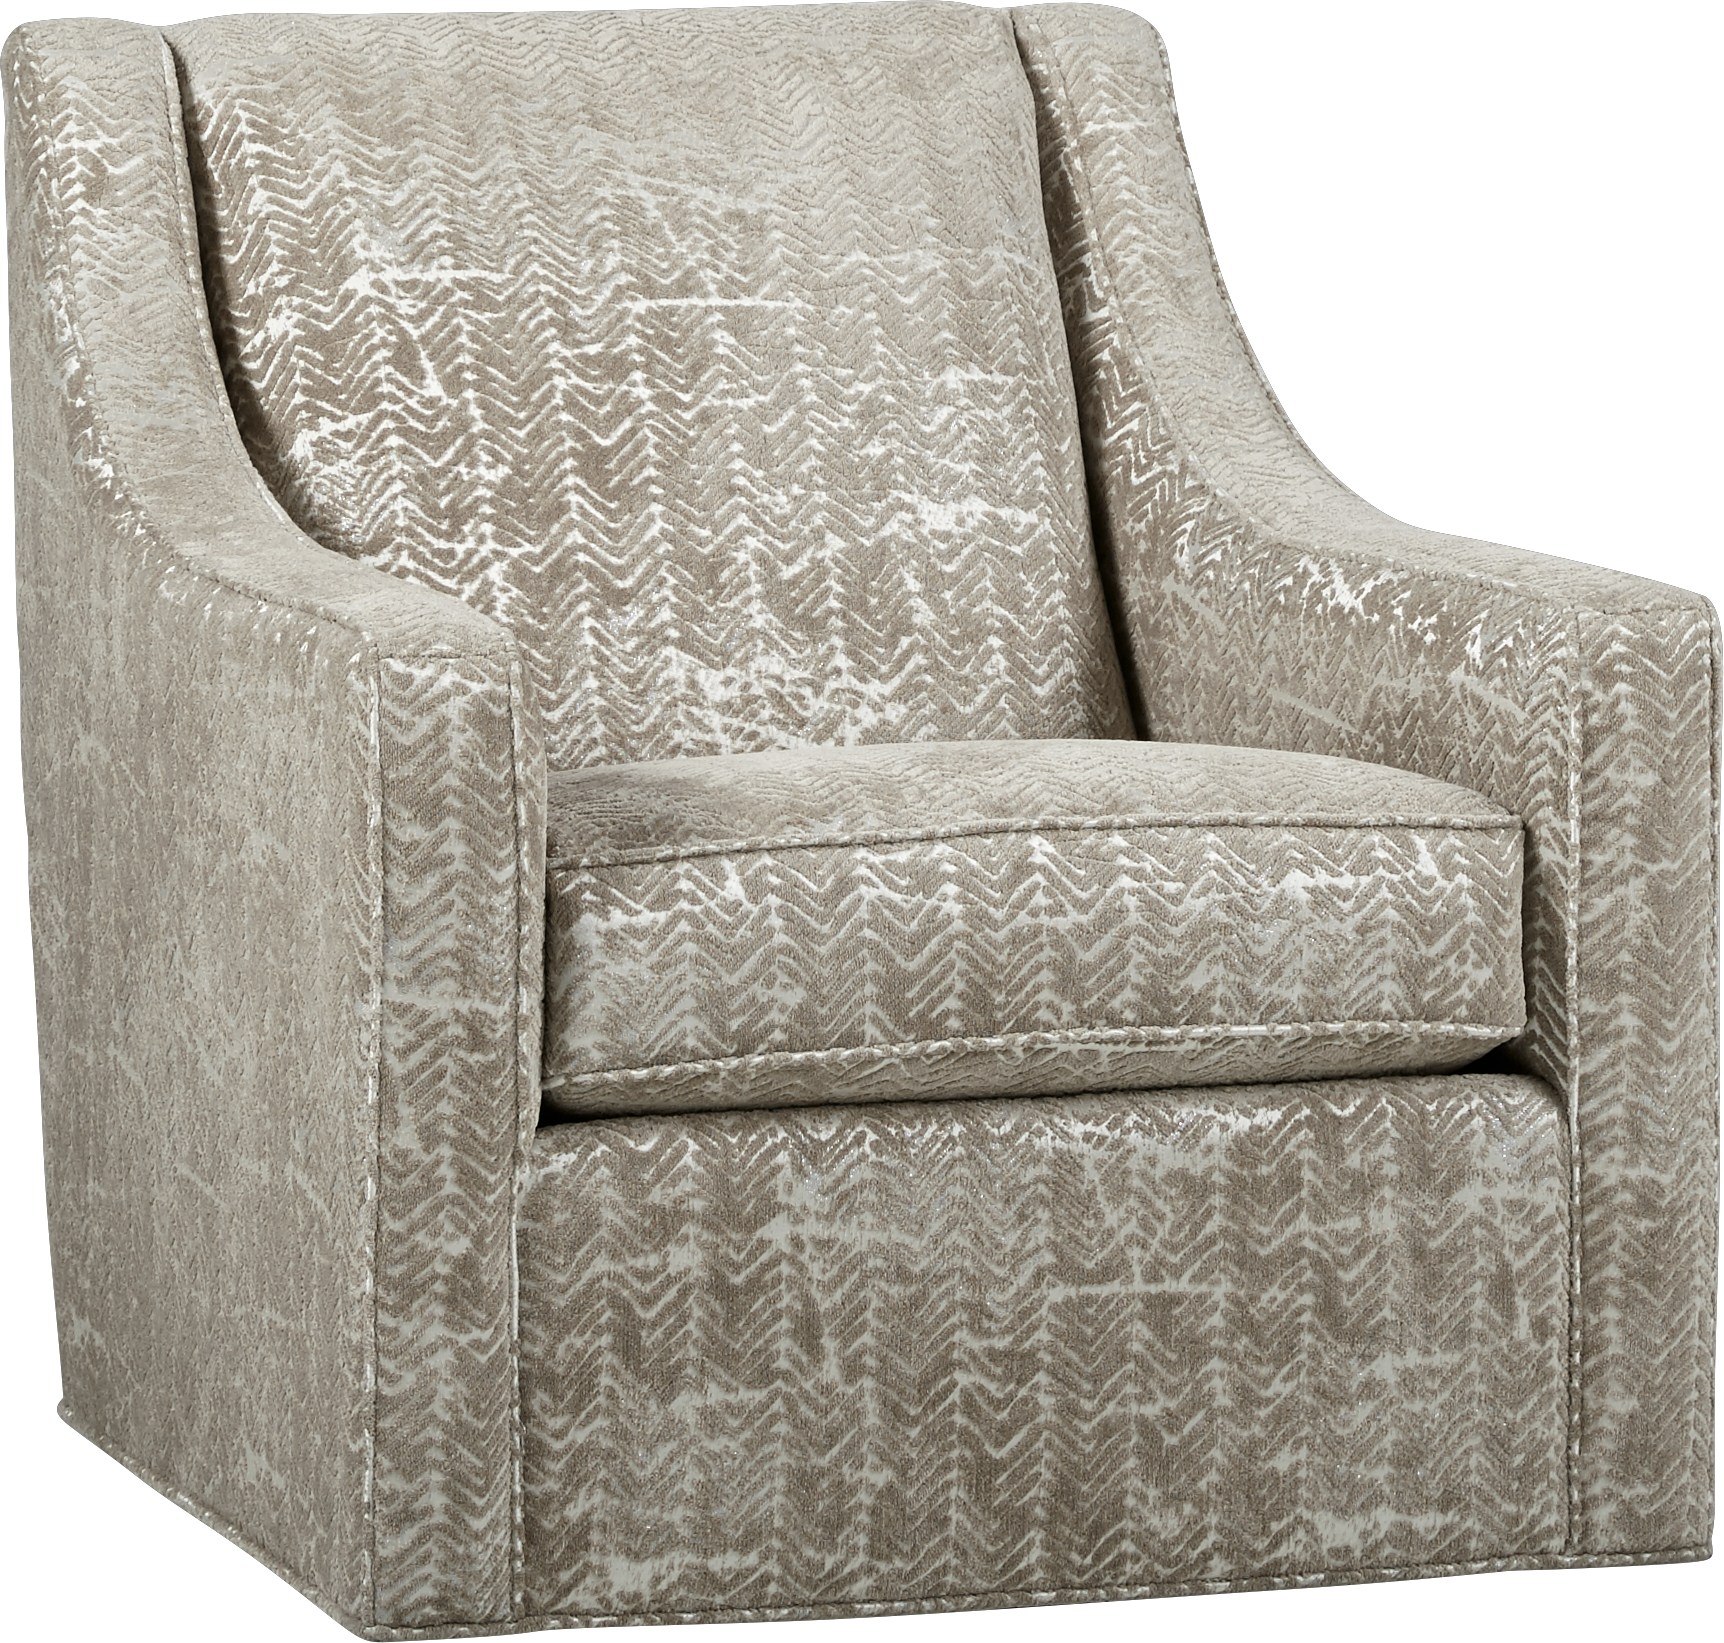 Cindy Crawford Home Pacific Harbor Beige Accent Chair – Accent Intended For Harbor Grey Swivel Accent Chairs (Image 7 of 25)